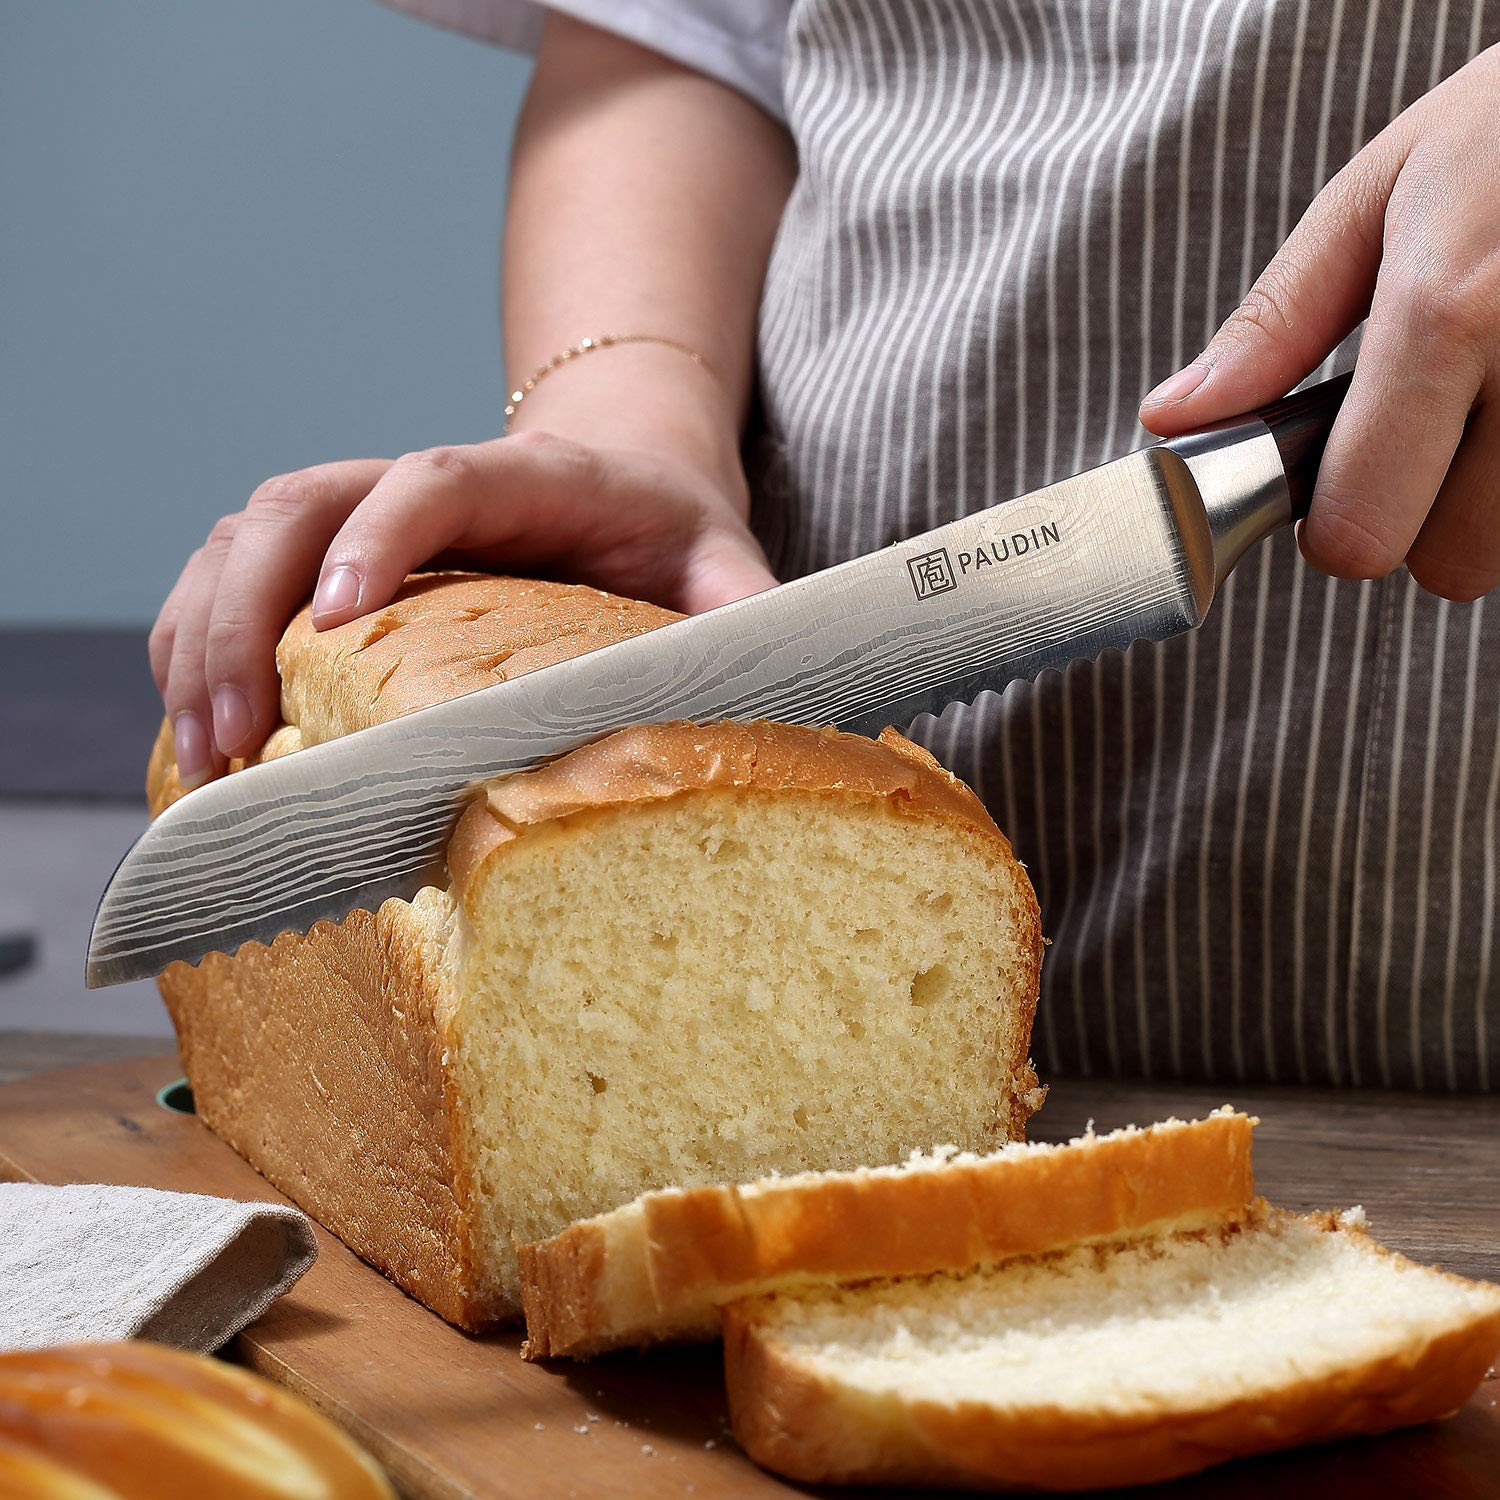 PAUDIN 8 Inch Serrated Bread Knife Cake Slicer Knife, German High Carbon Stainless Steel Knife Kitchen Knife for Cutting Crusty Breads, Cake by PAUDIN (Image #3)